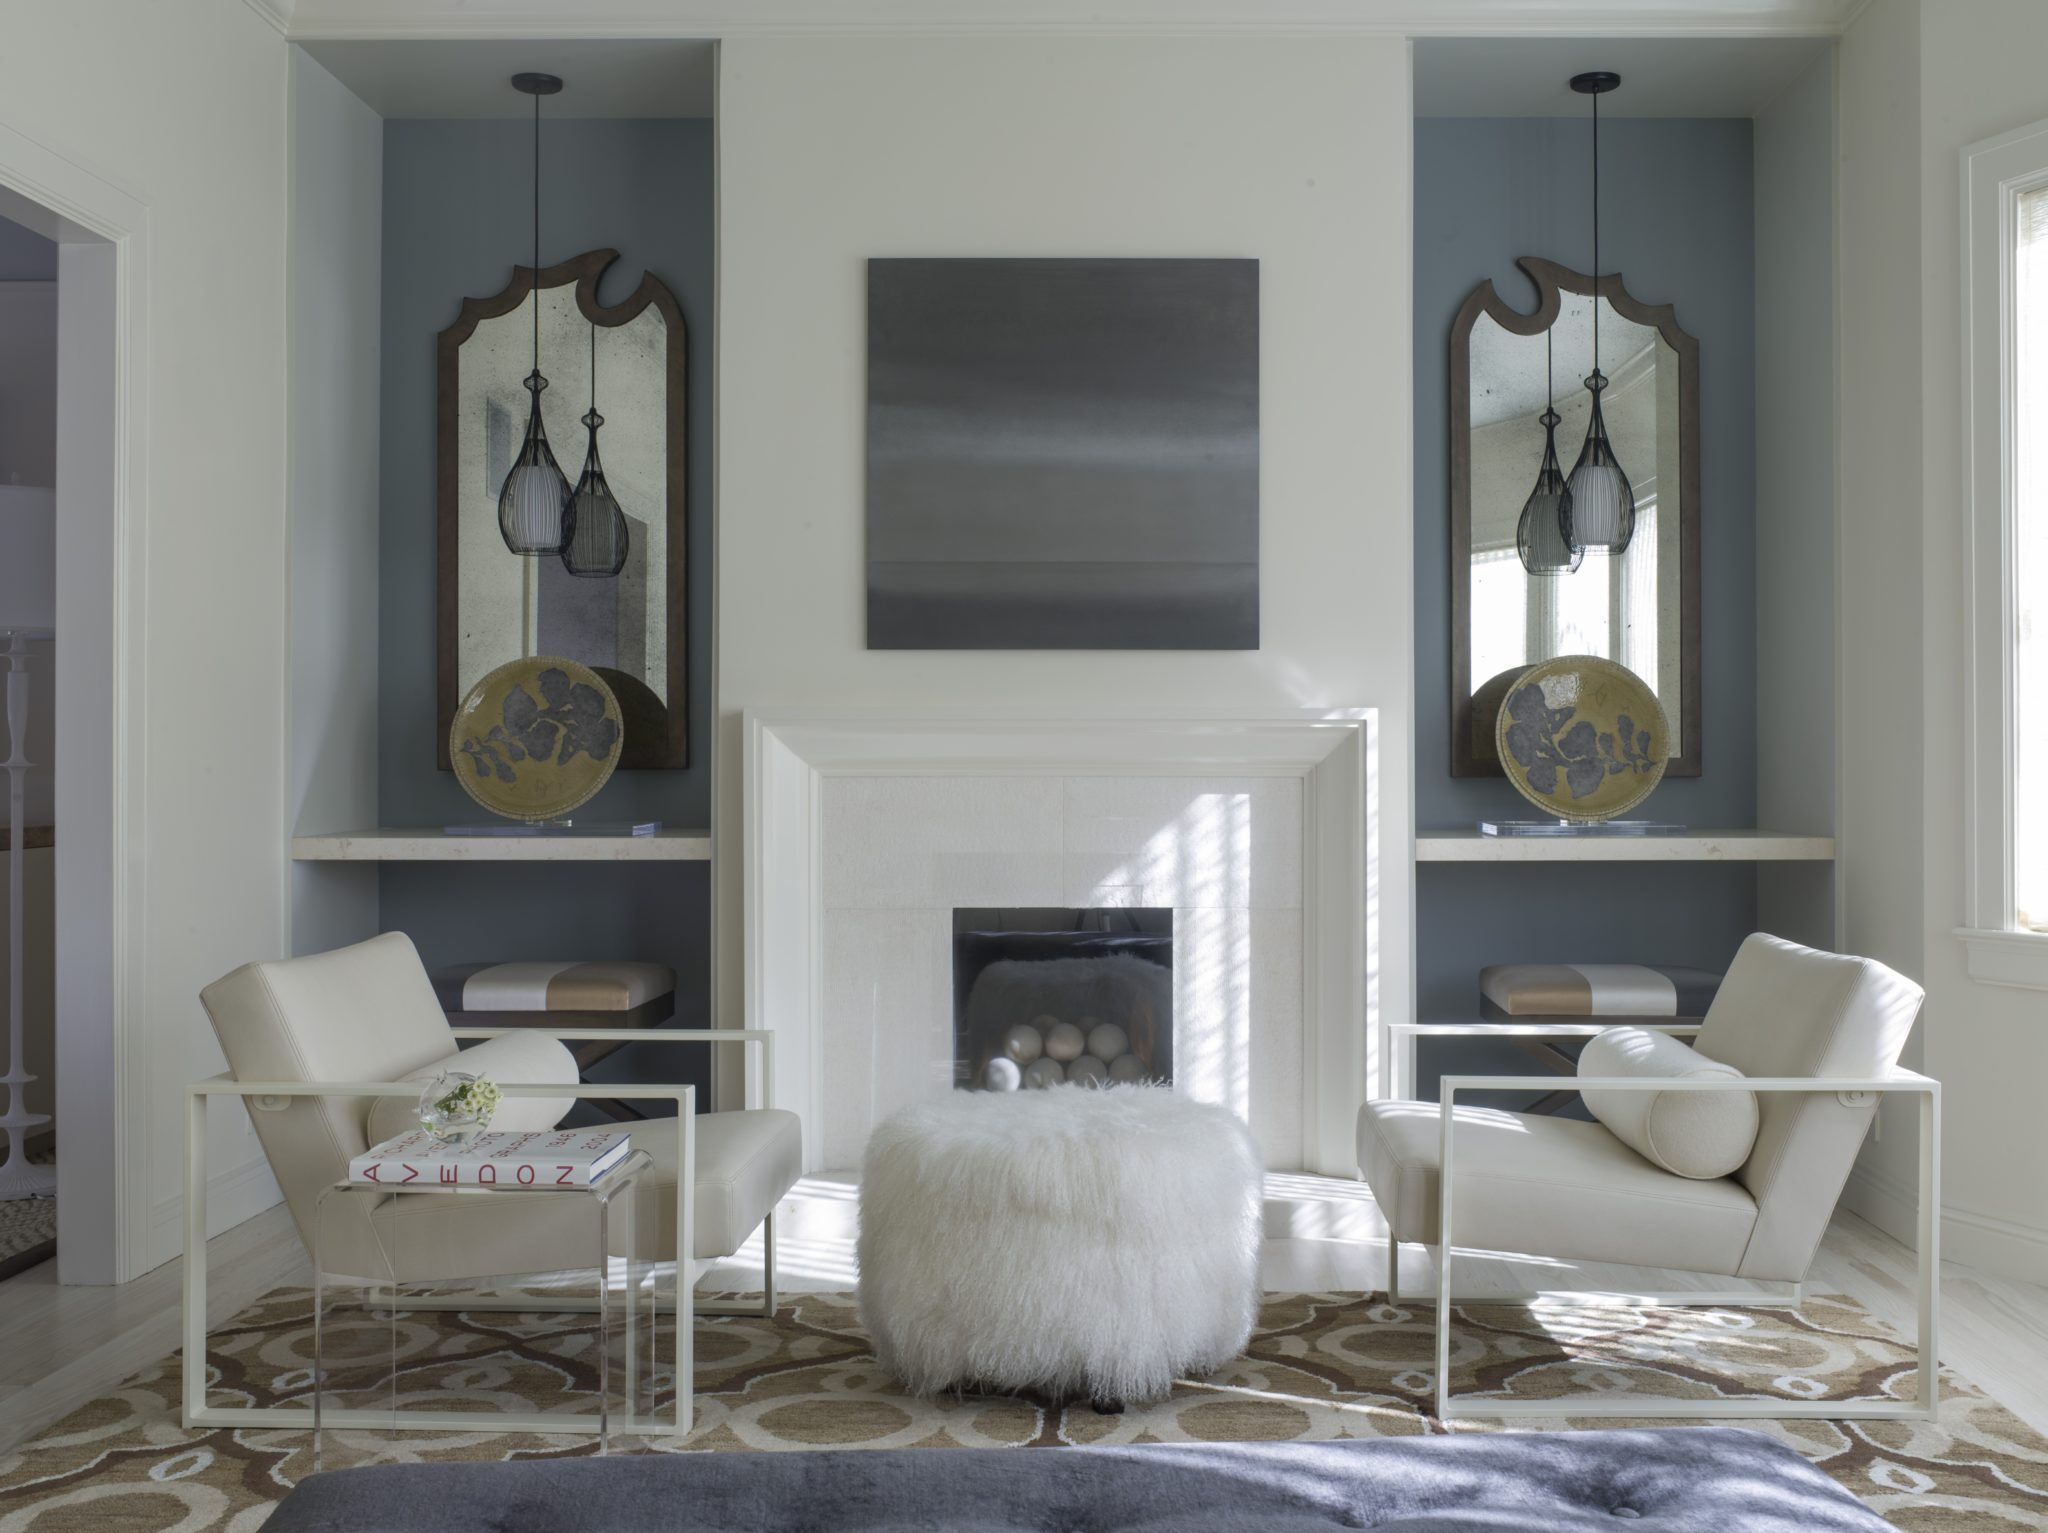 Hand-forged mirrors by Bradley Hughes, CB2 chairs upholstered in bespoke fabric. by Angela Free Design